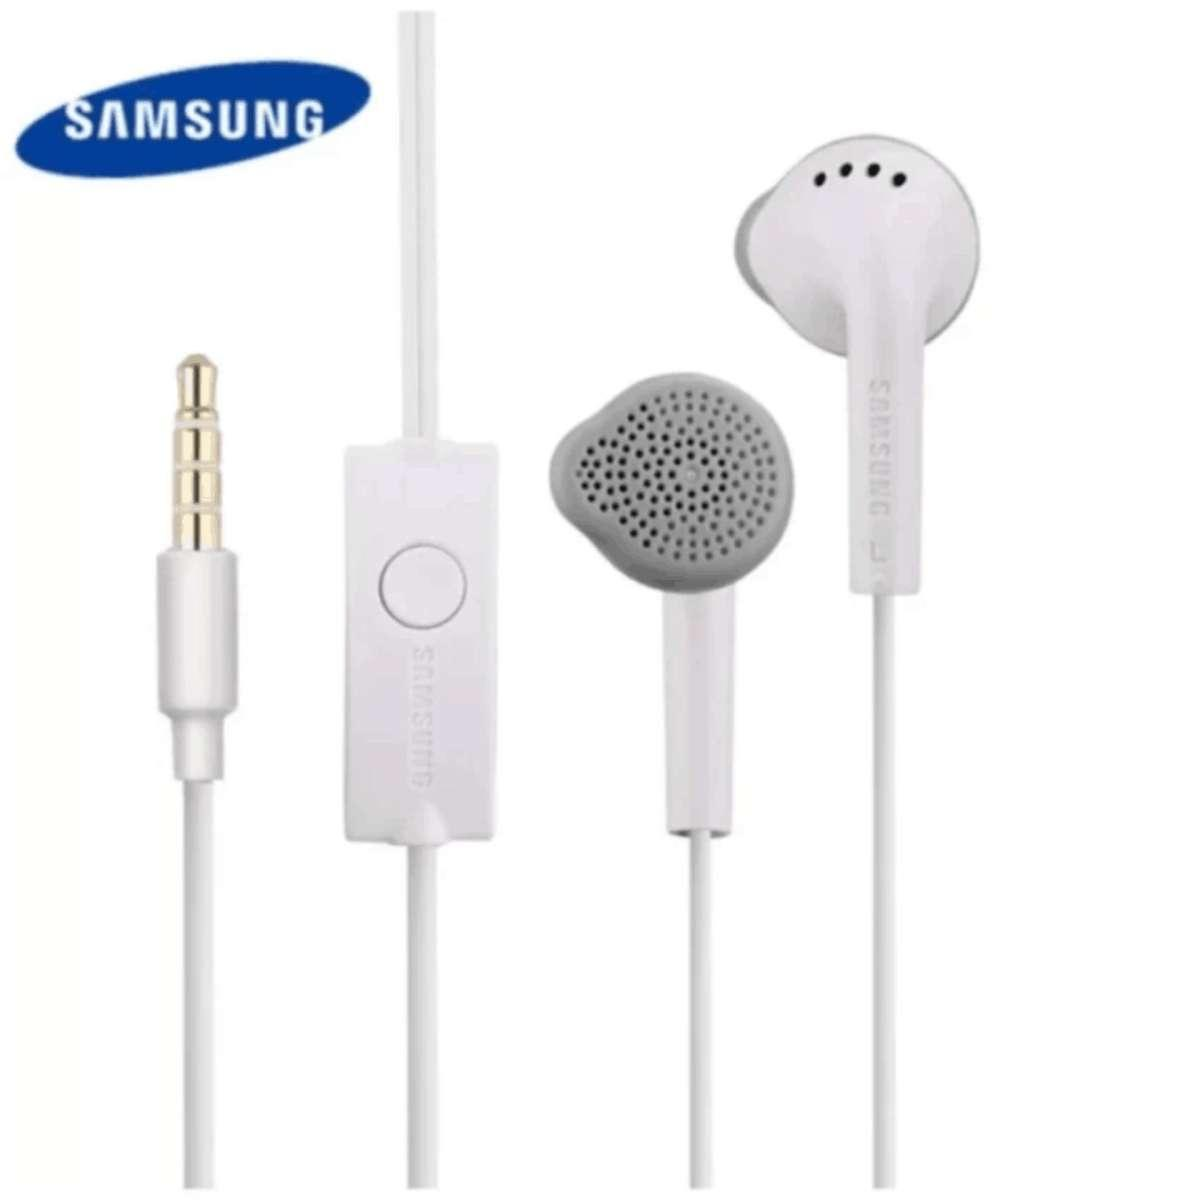 Samsung Philippines Headphones For Sale Prices Reviews J5 Handsfree Headset Earphone Earbud Mic Oem Equipment Manufactured Earphones Original Universal Good Quality White